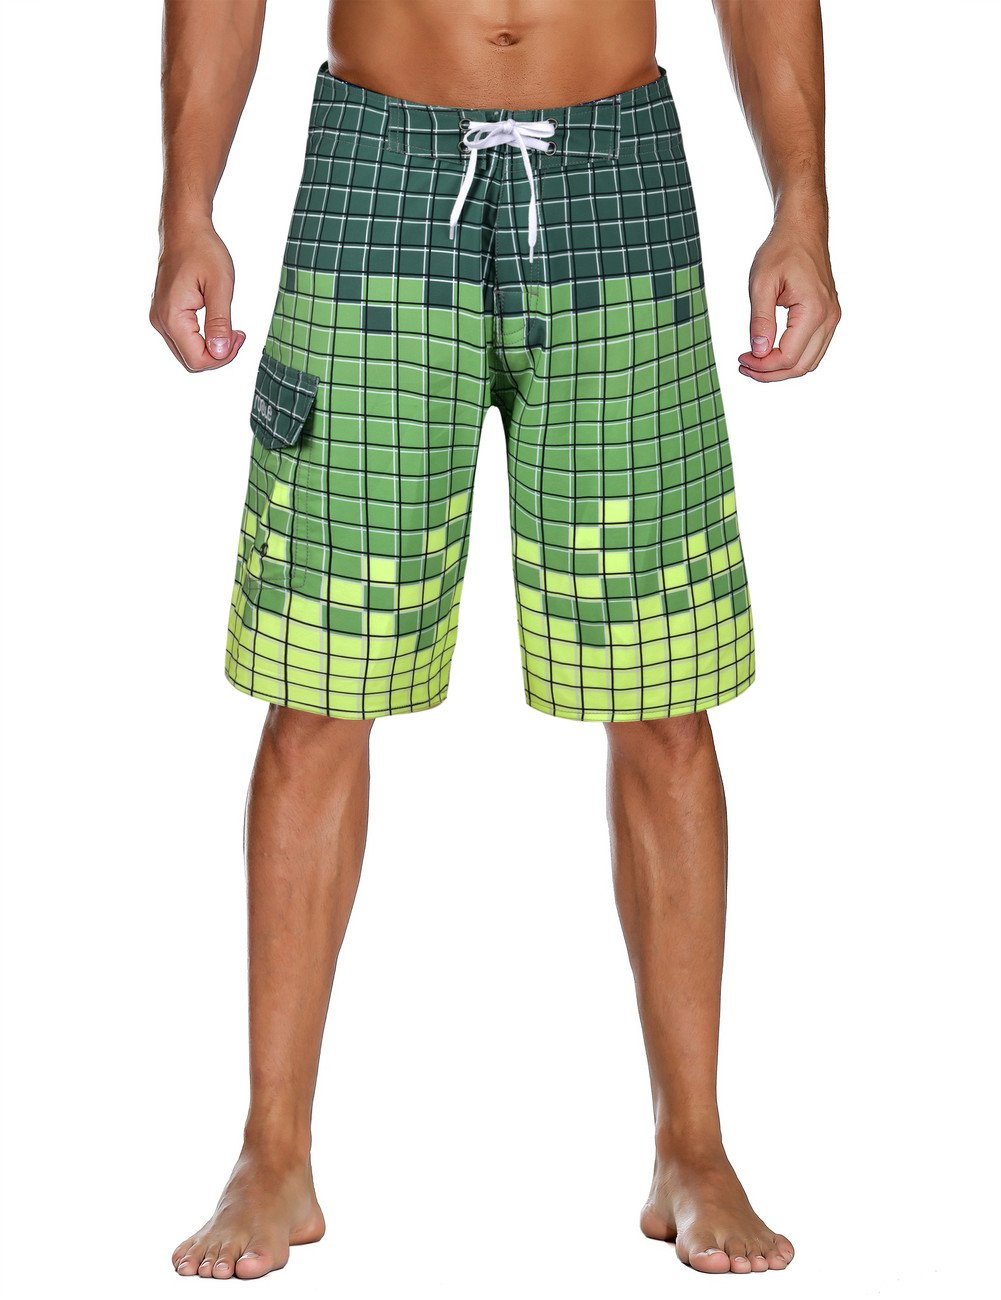 0e01080c9c Nonwe Men's Swimwear Grid Printed Quick Dry Board Shorts with Lining Green  40